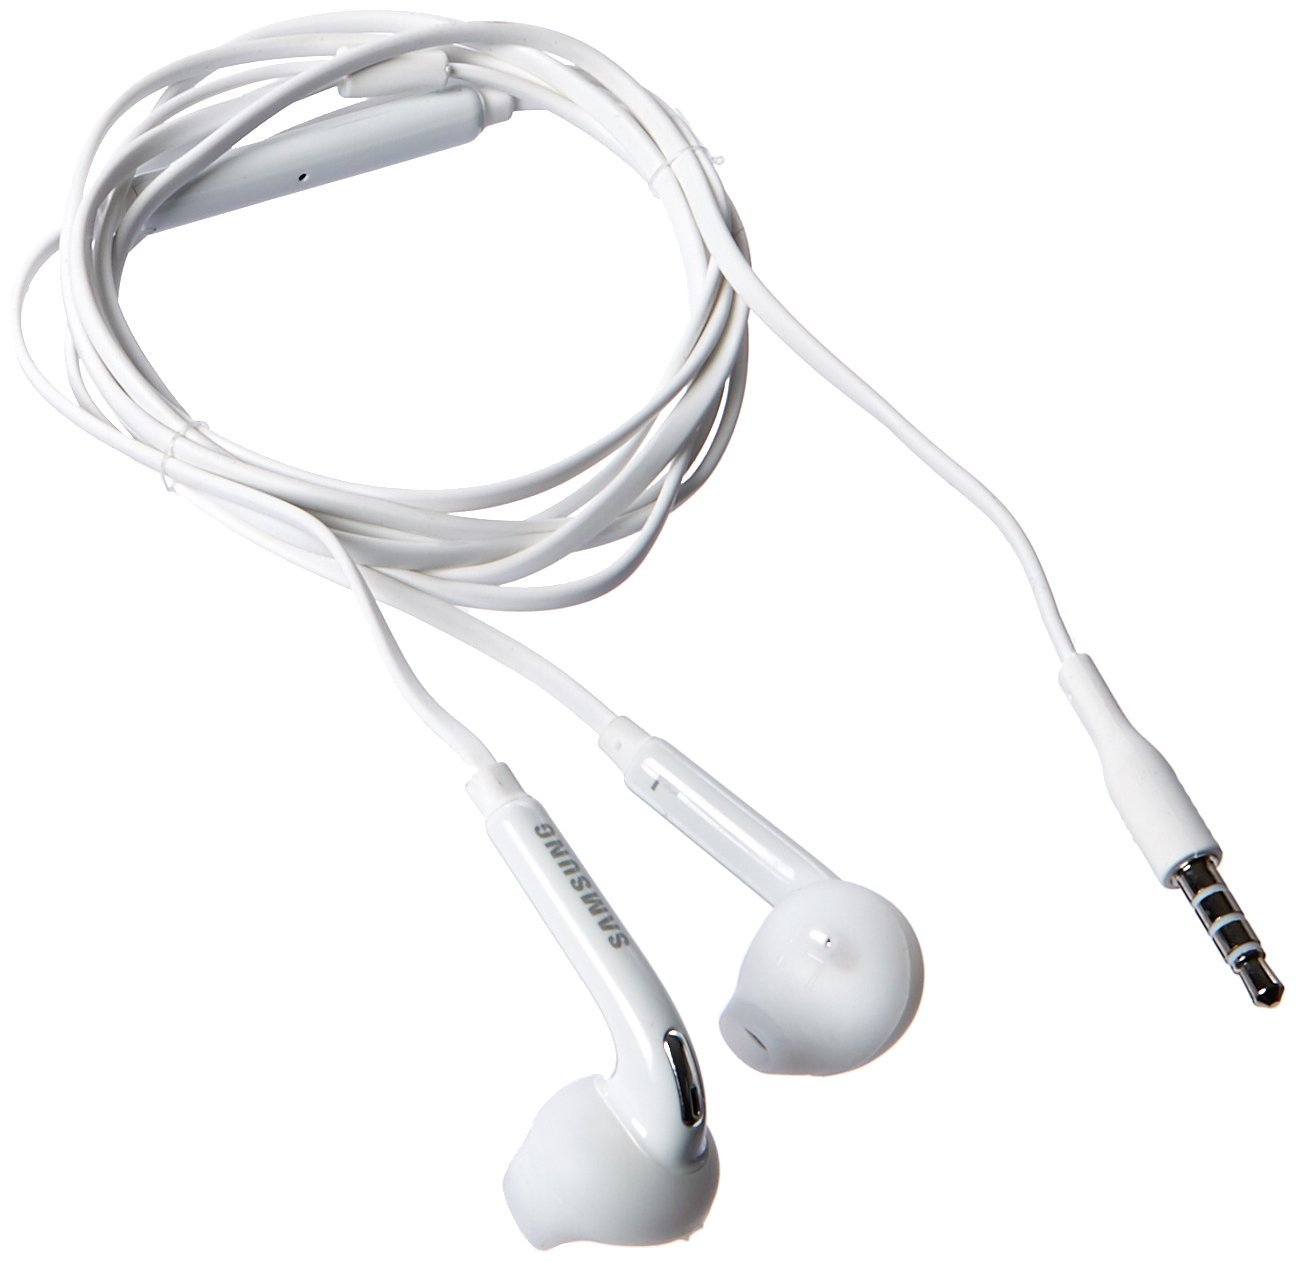 Samsung OEM Original Genuine Wired Headset for Samsung Galaxy S6/S6 Edge - Non-Retail Packaging - White